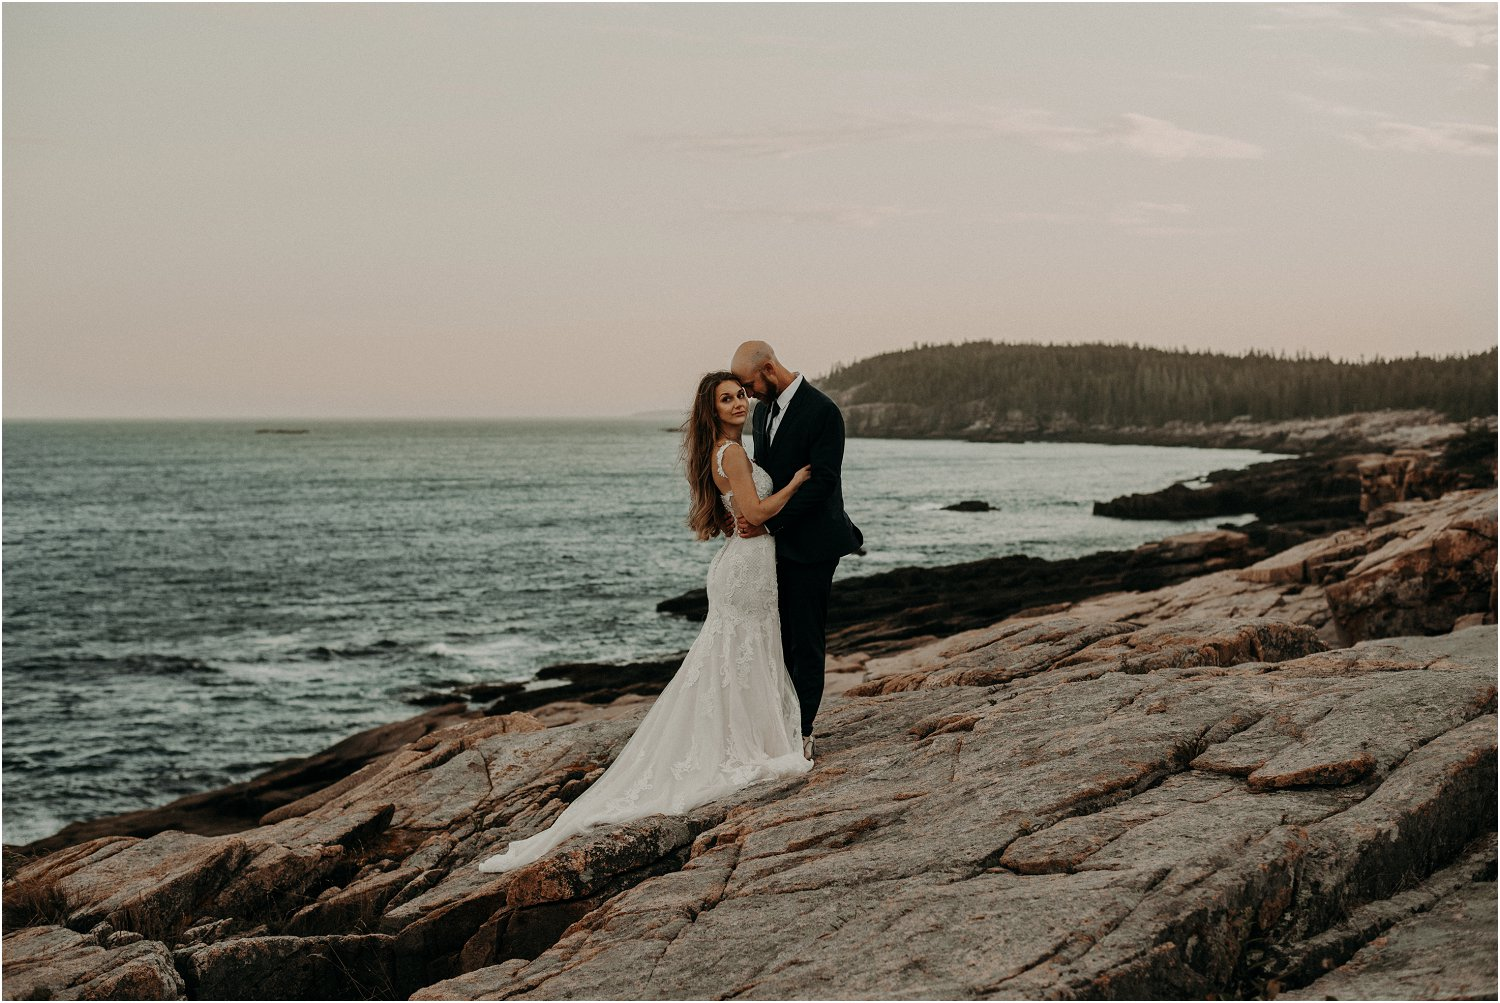 acadia national park wedding photo